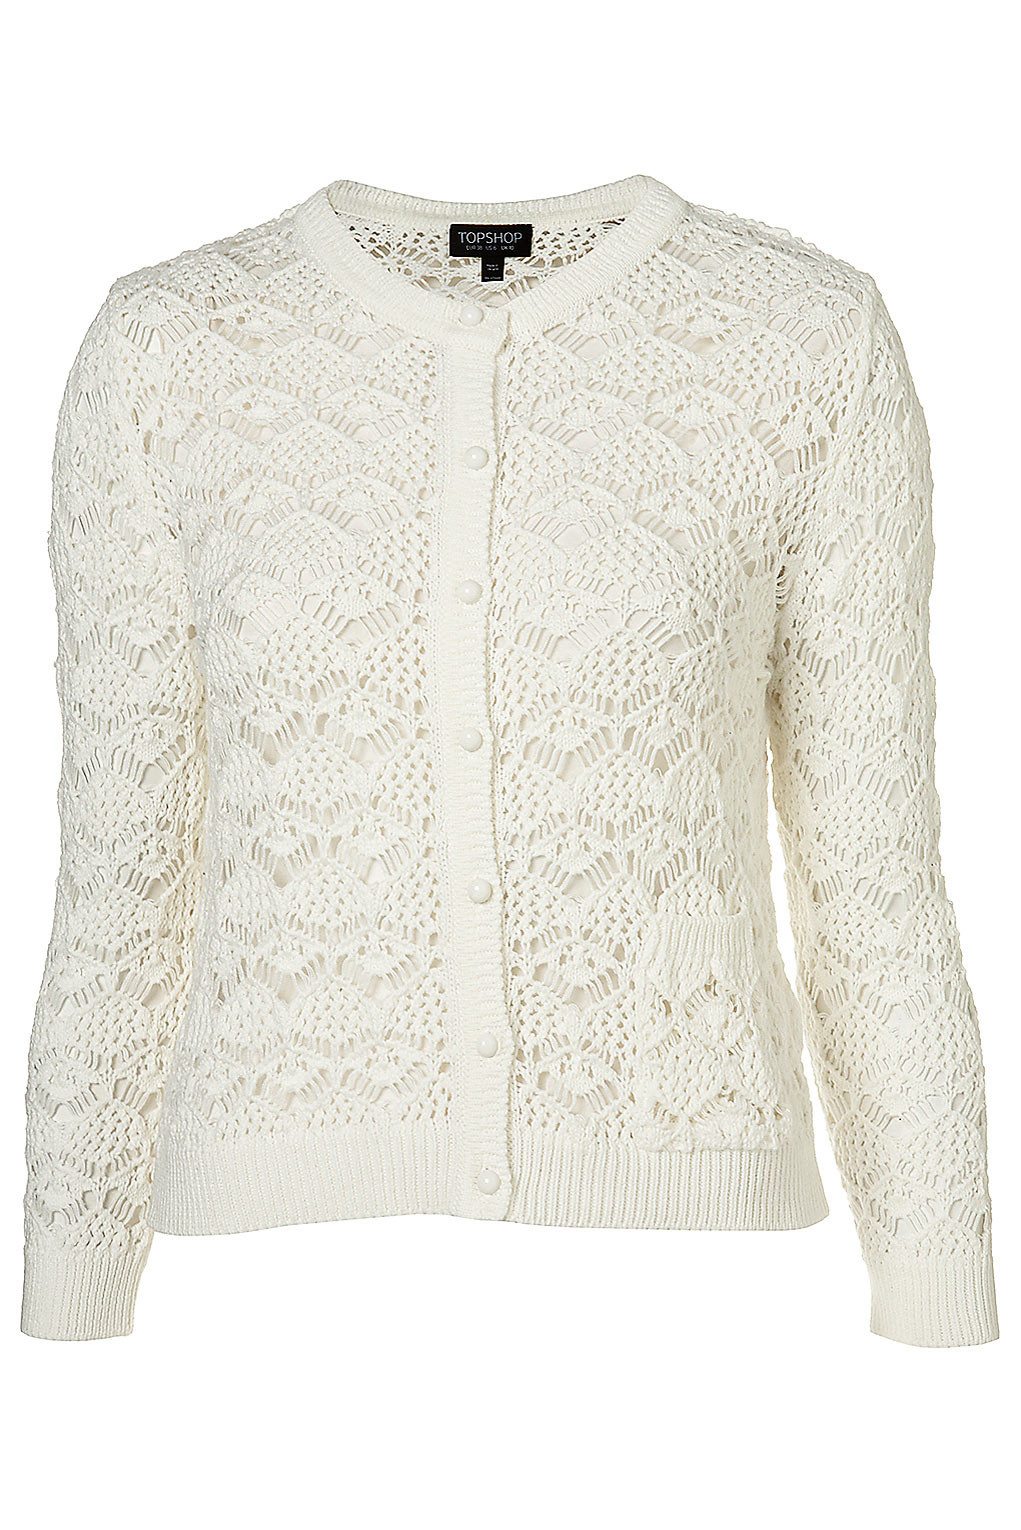 Elegant topshop Knitted F White Crochet Fifties Style Cardigan White Crochet Cardigans Of Delightful 41 Images White Crochet Cardigans